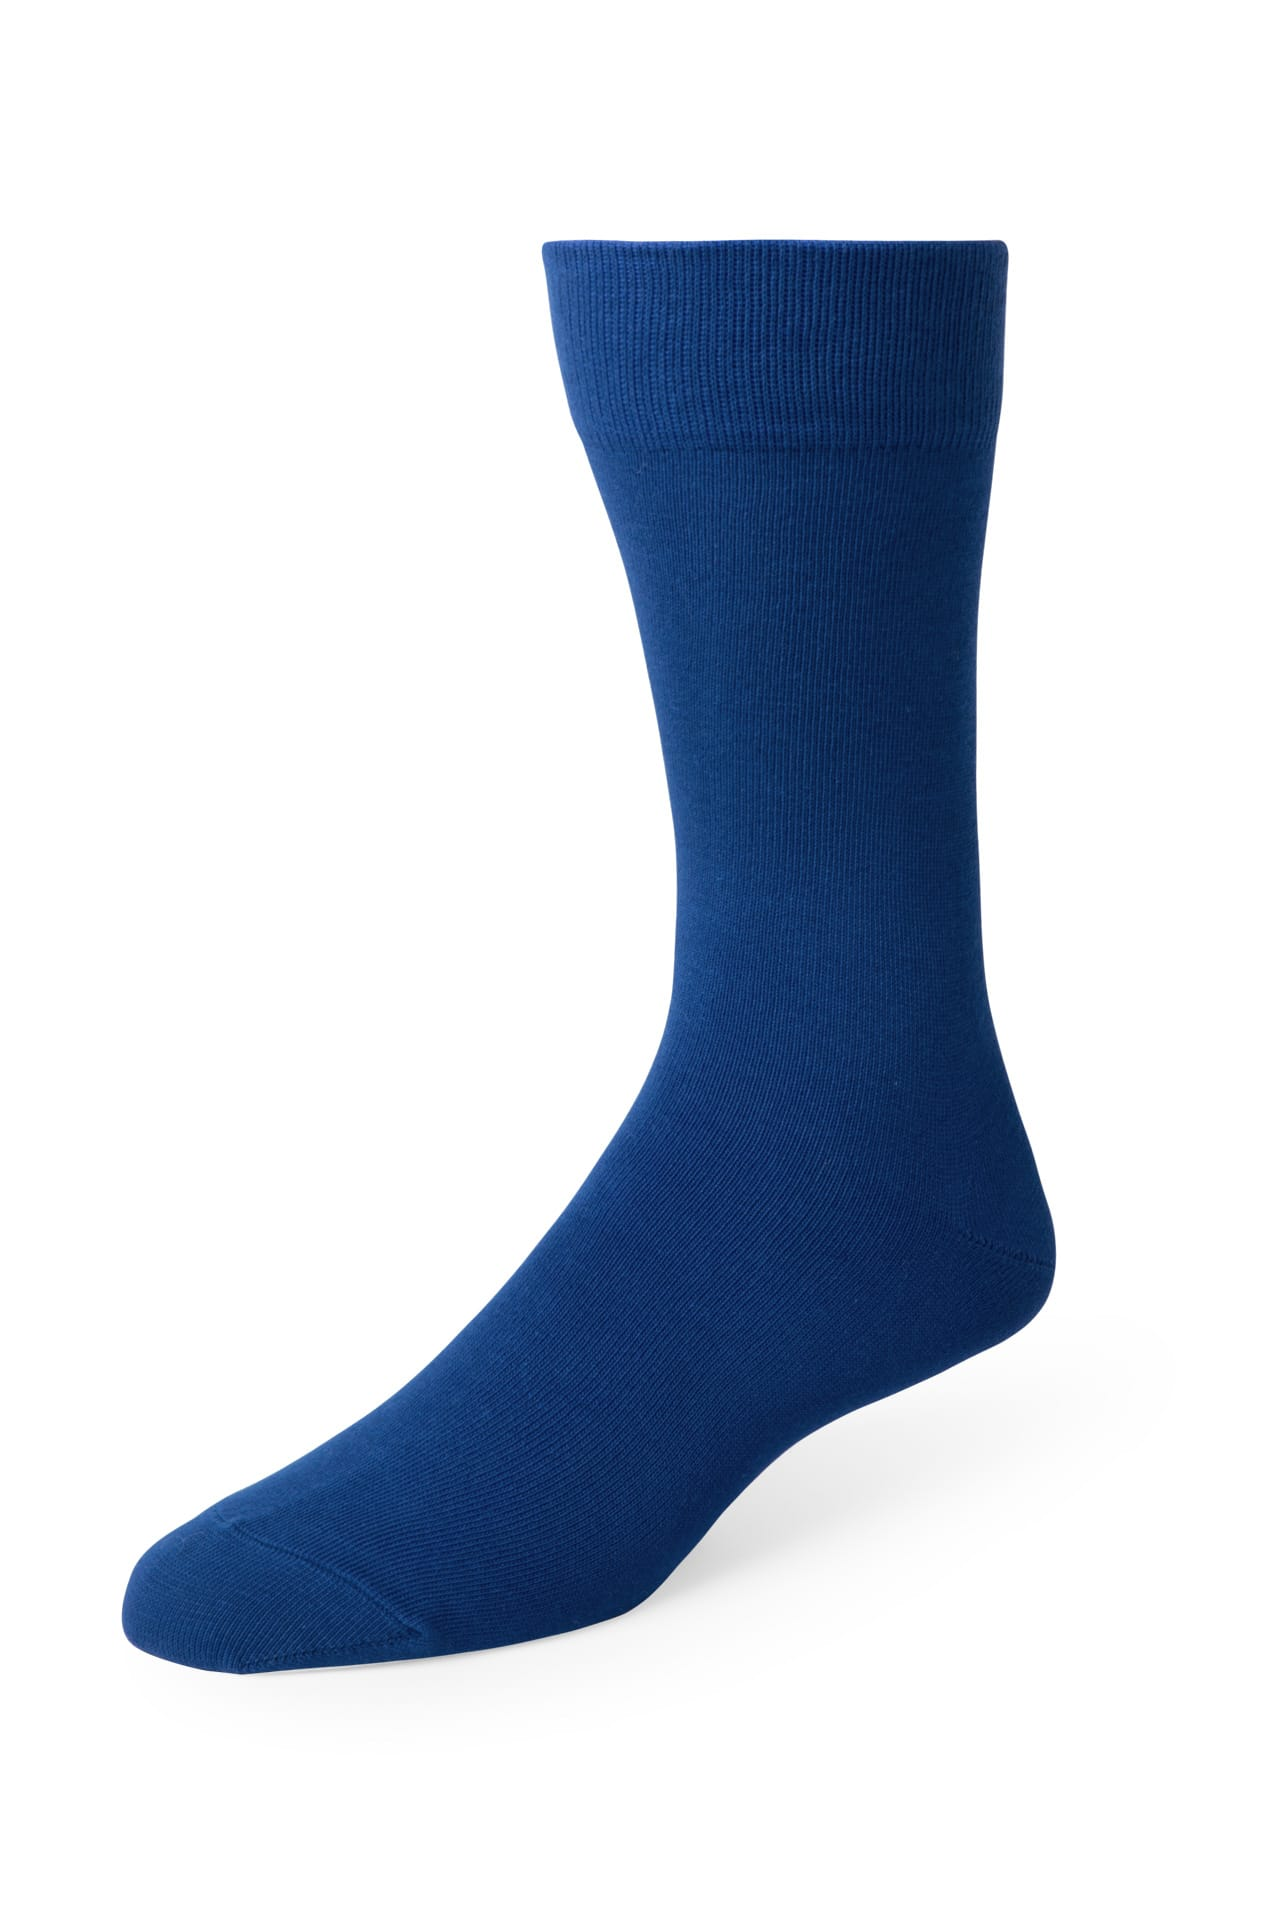 Royal Blue Socks Jim S Formal Wear